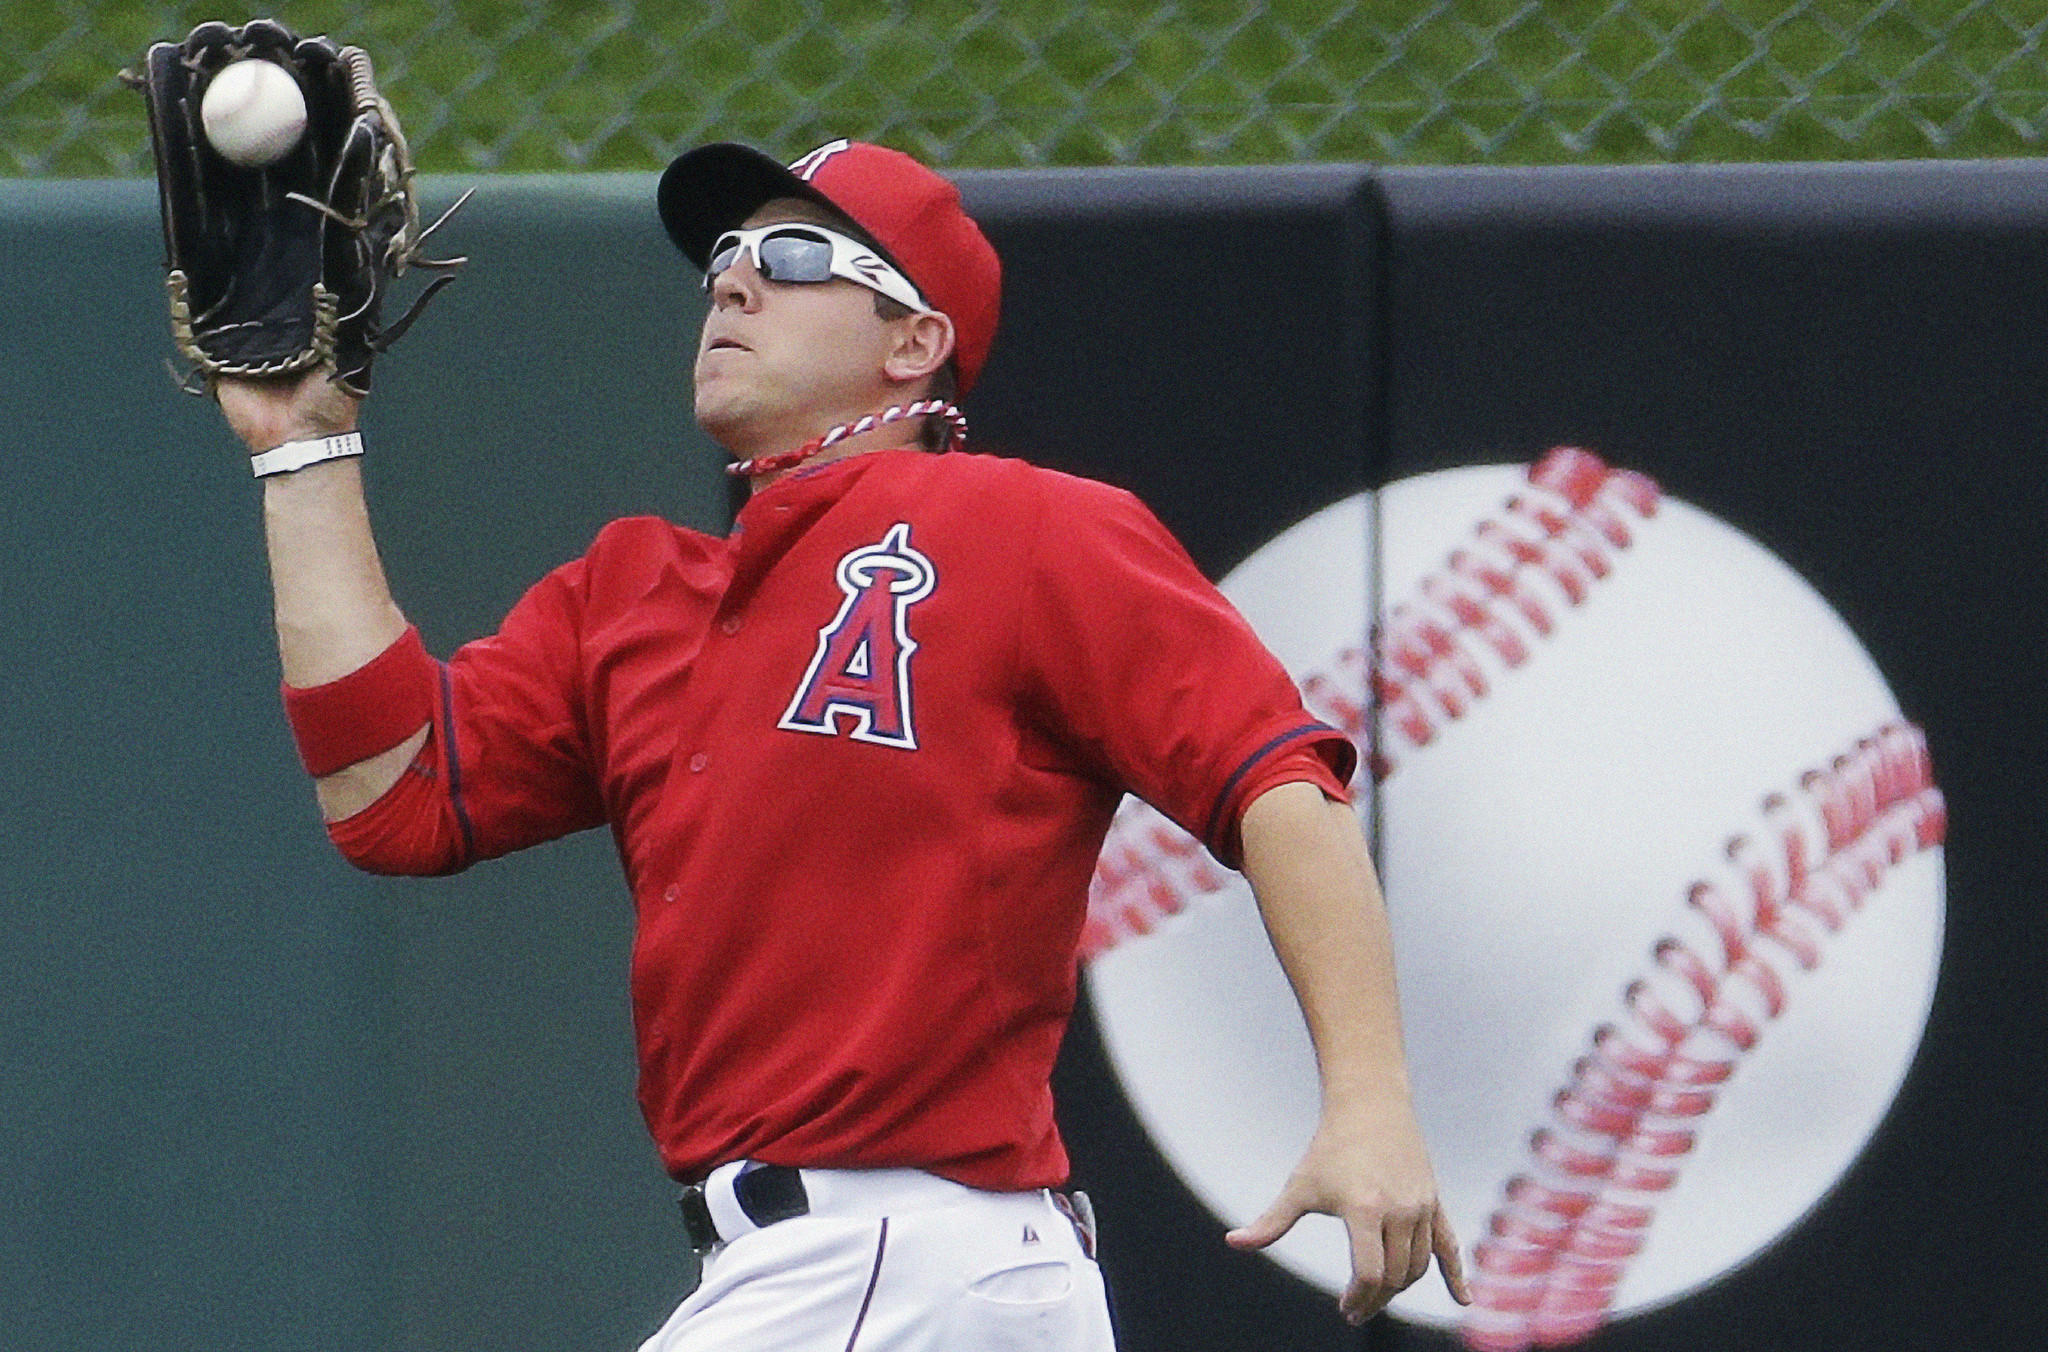 Angels outfielder J.B. Shuck catches a fly ball during an exhibition game against the Dodgers in March. Shuck's throwing accuracy and quick release makes him a threat to baserunners.